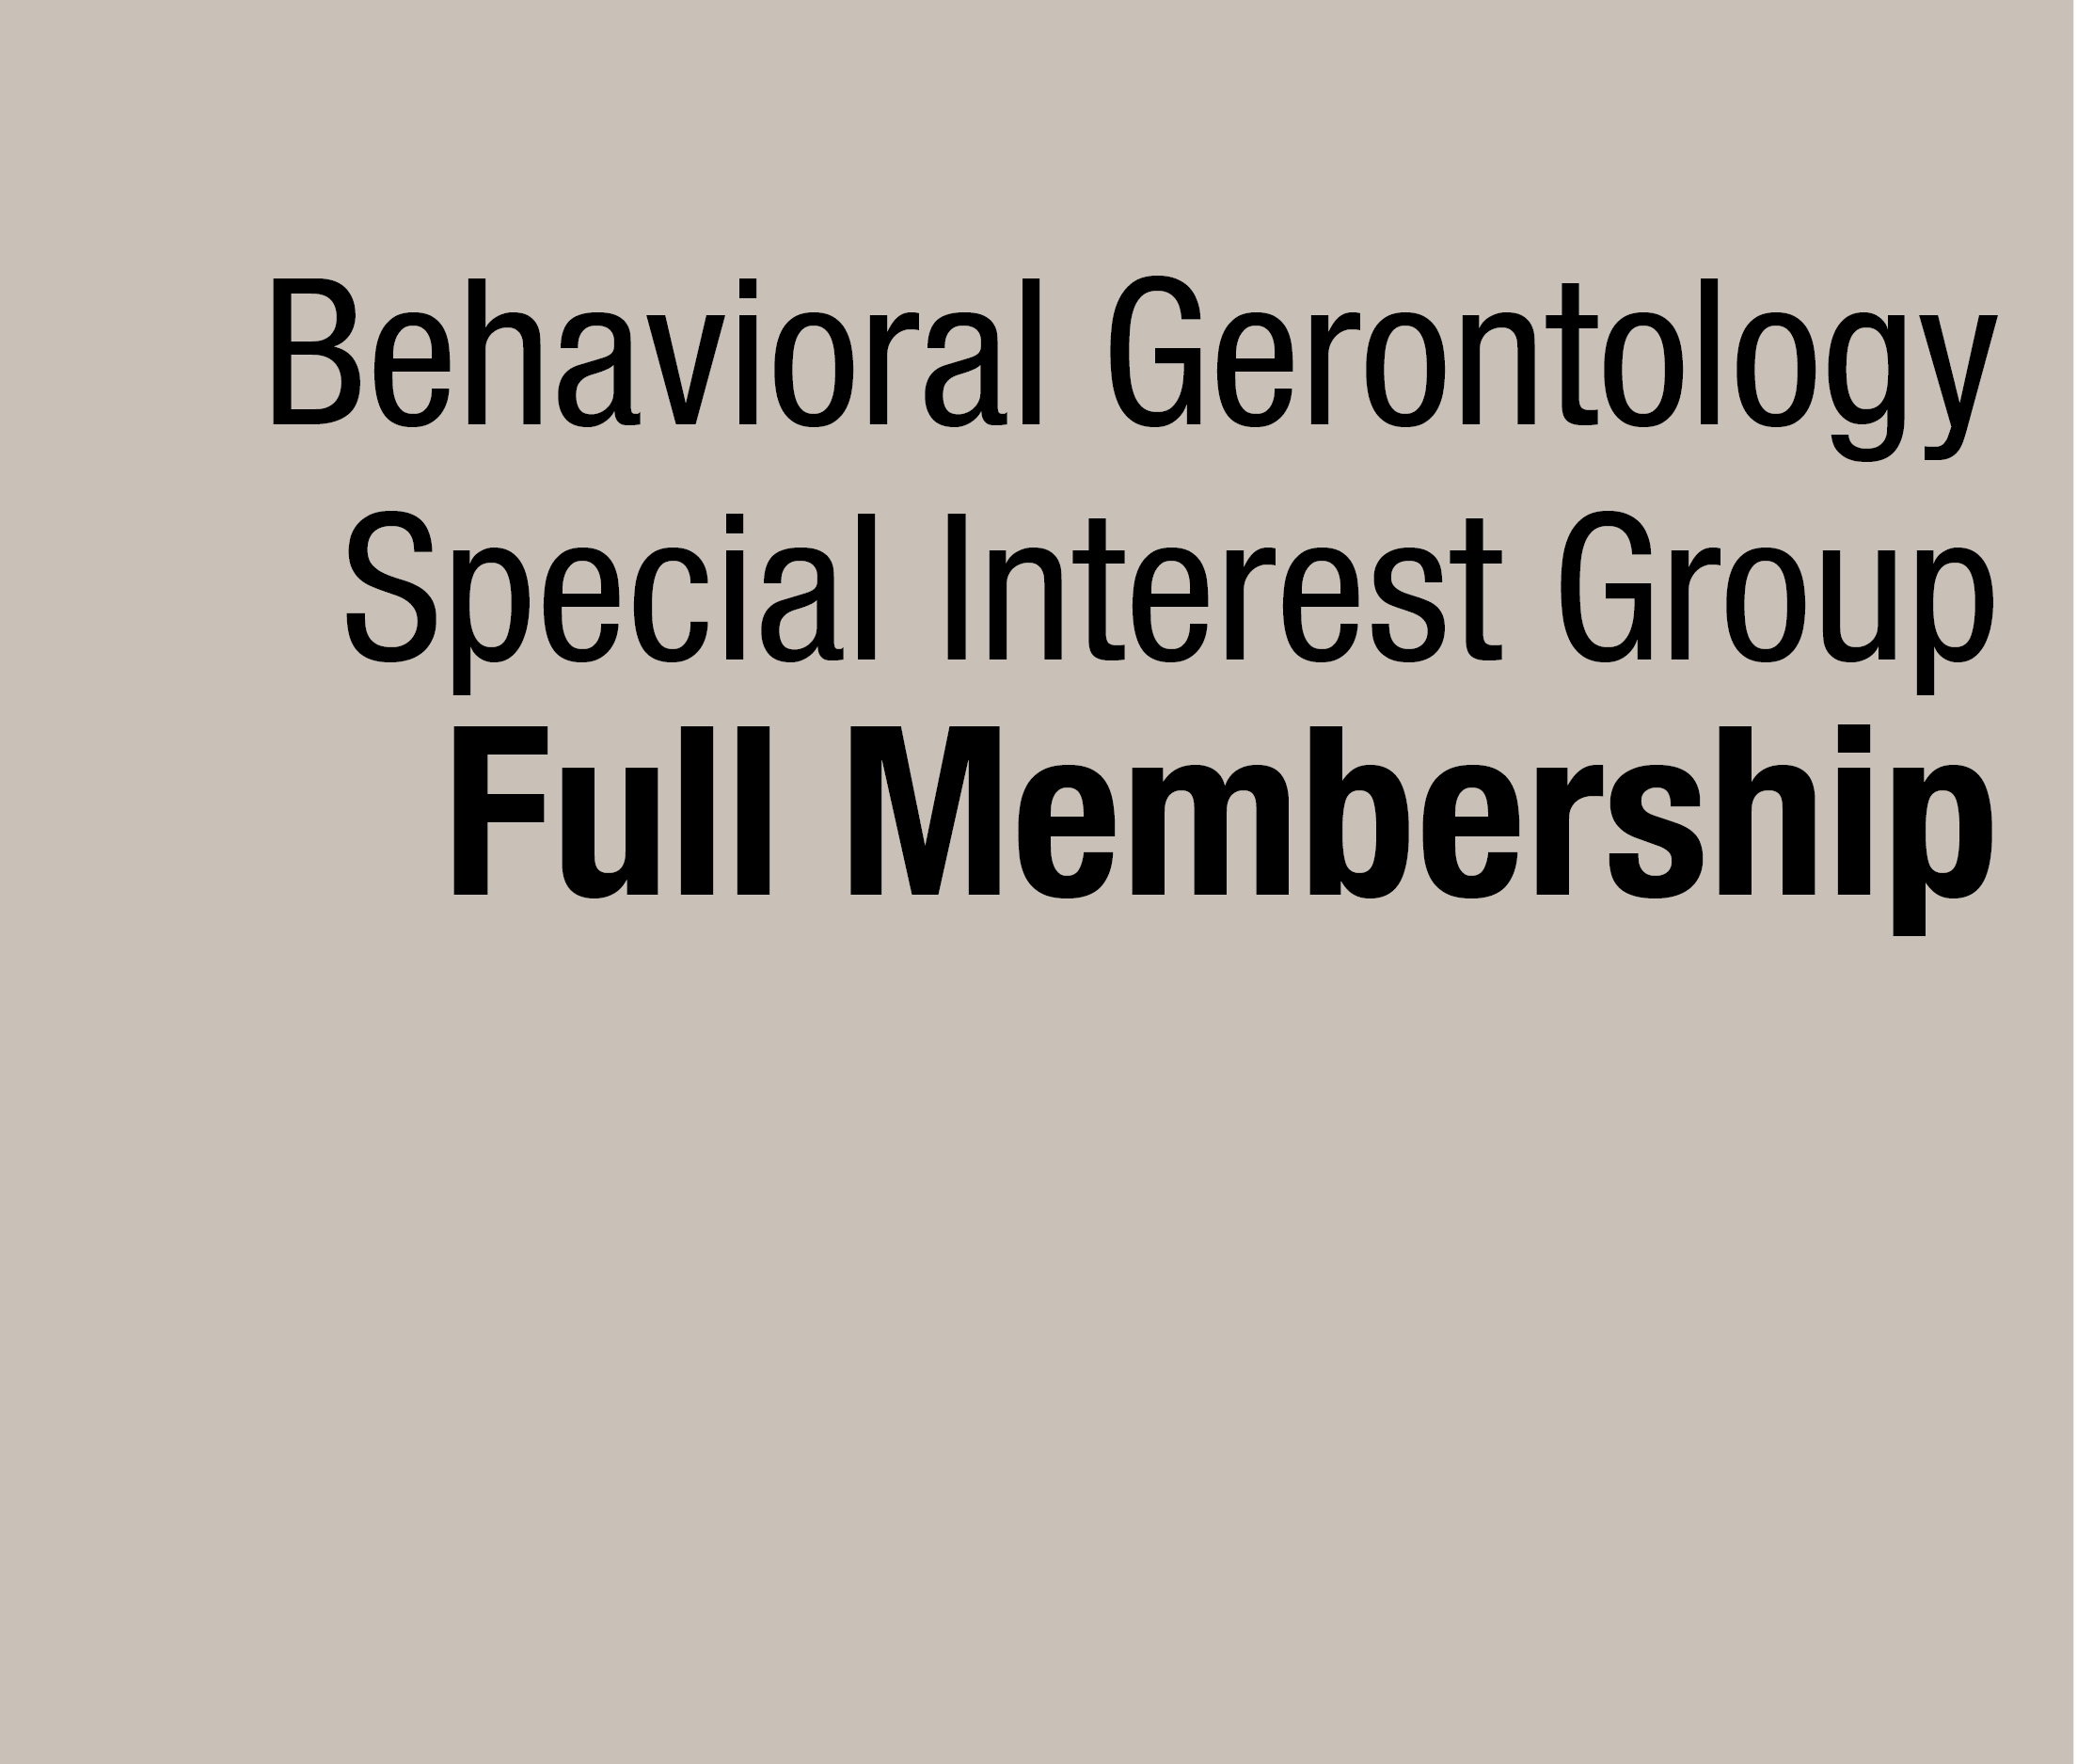 a square graphic representing Behavioral Gerontology SIG Full Membership (9/1/21-8/31/22)